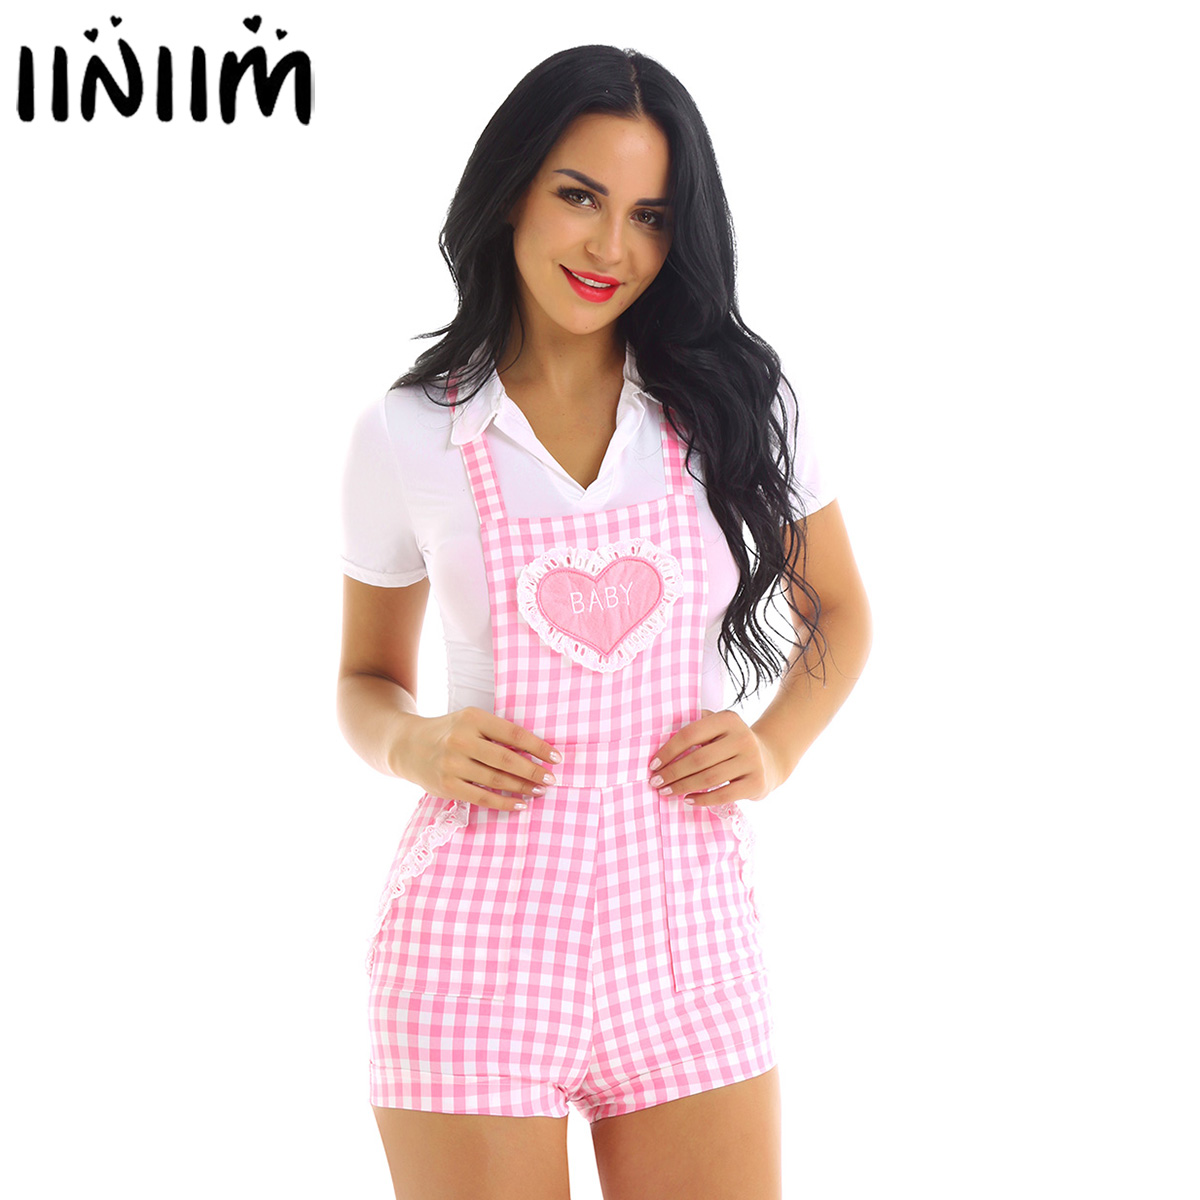 Femme Womens Cute School Clothing Baby Patch Adjustable Straps Criss cross Back Gingham Print Babydoll Short Overalls Shortalls